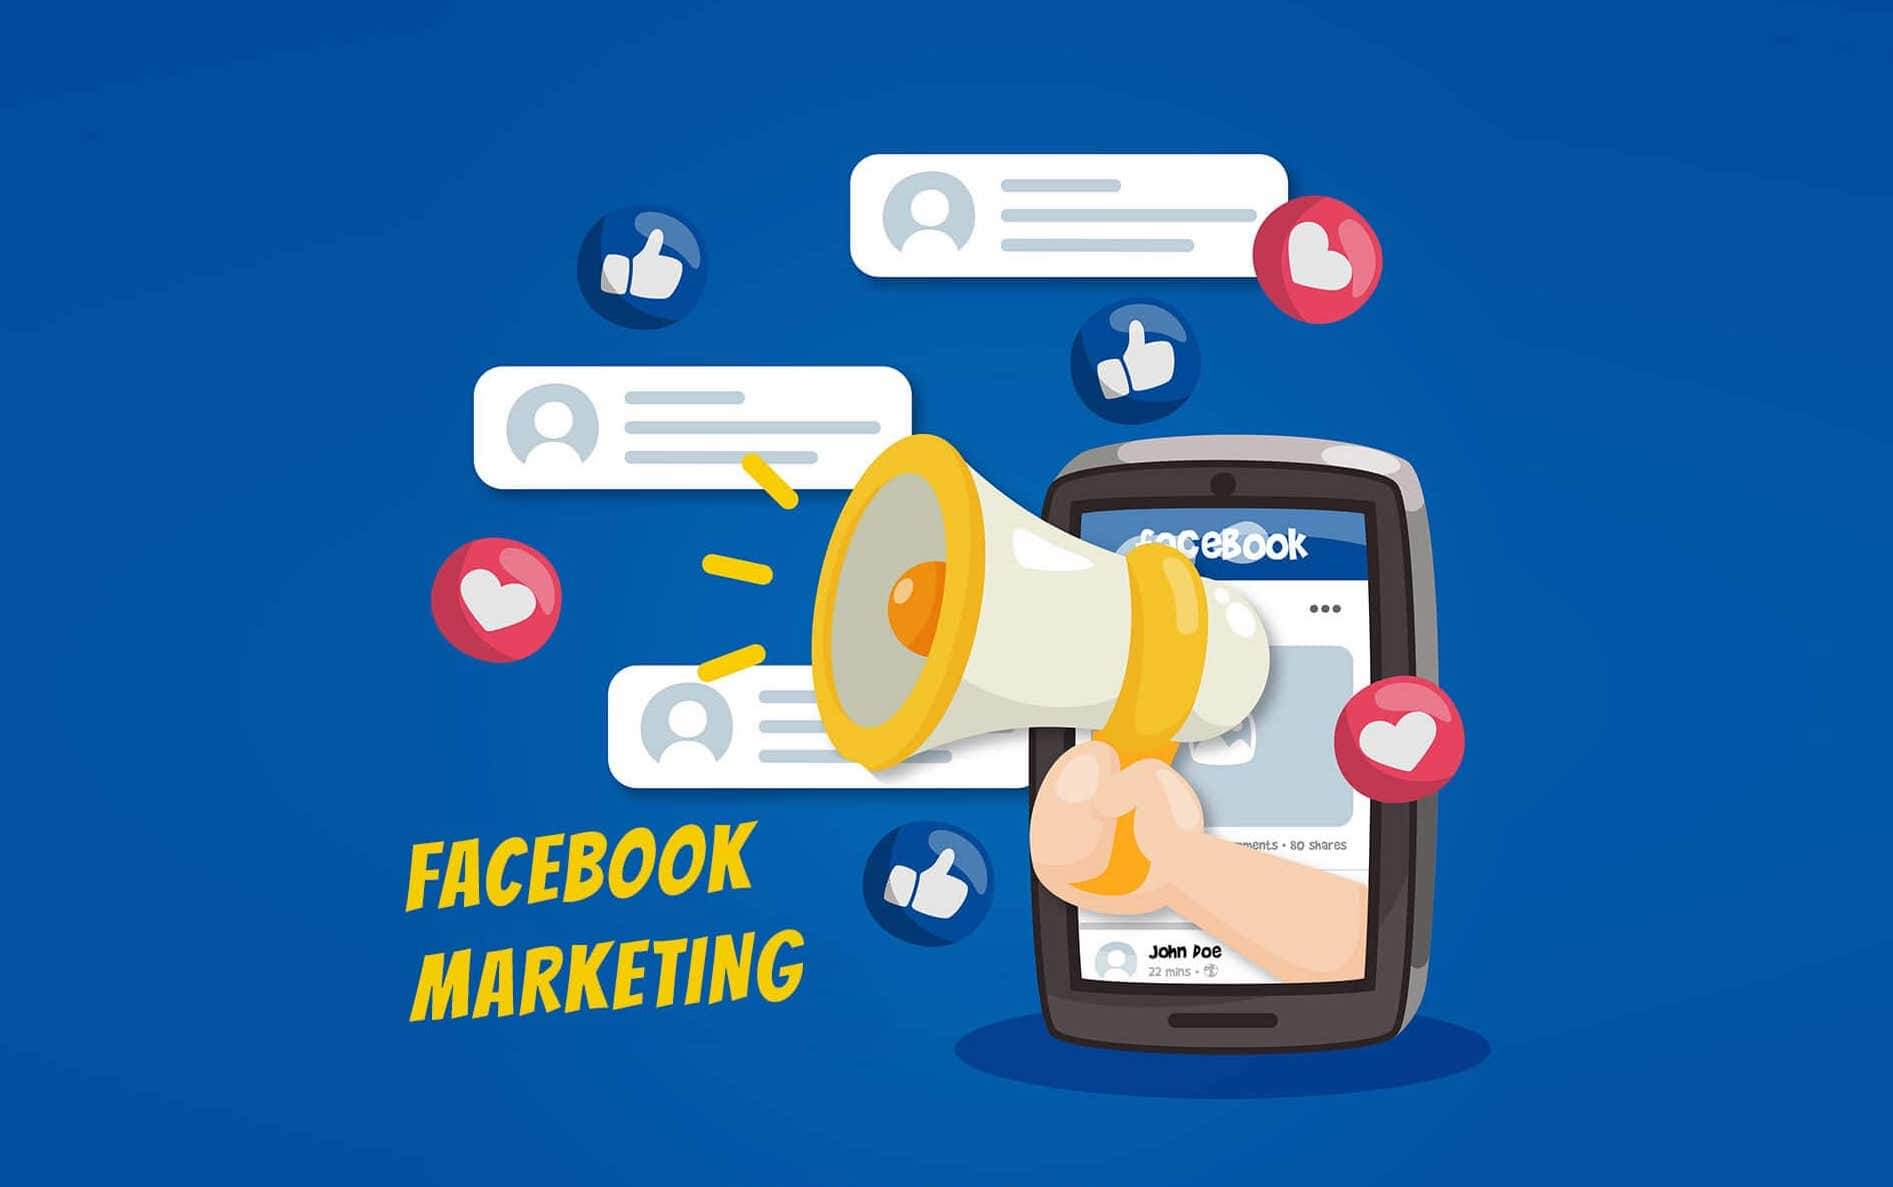 Facebook Marketing in 2020: How to Use Facebook for Business (2/3)